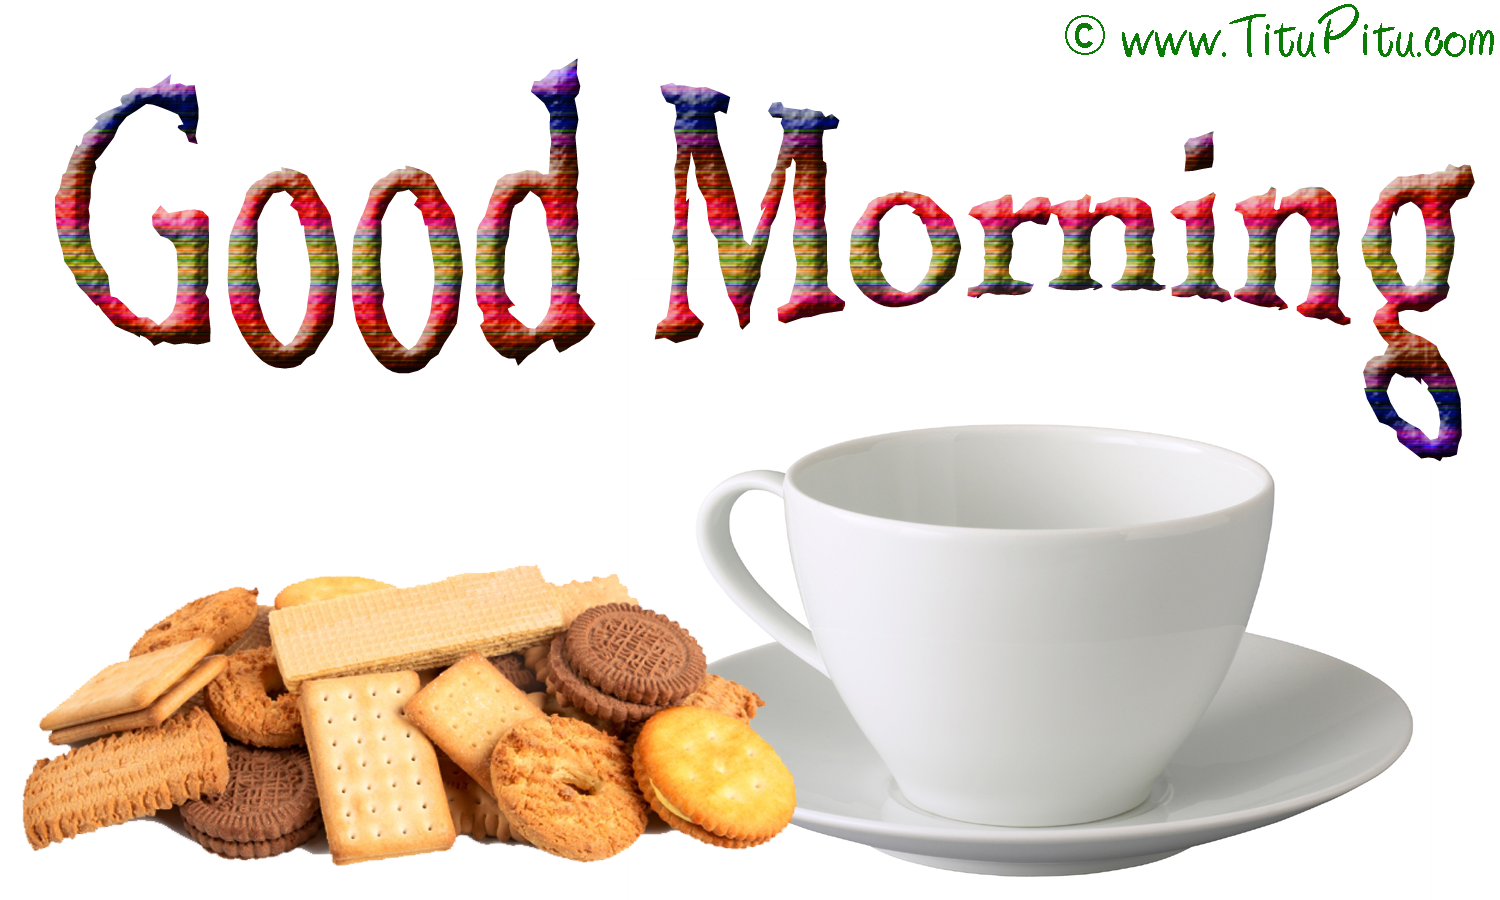 Enjoy Your Day - Good Morning - Have A Good Day PNG HD